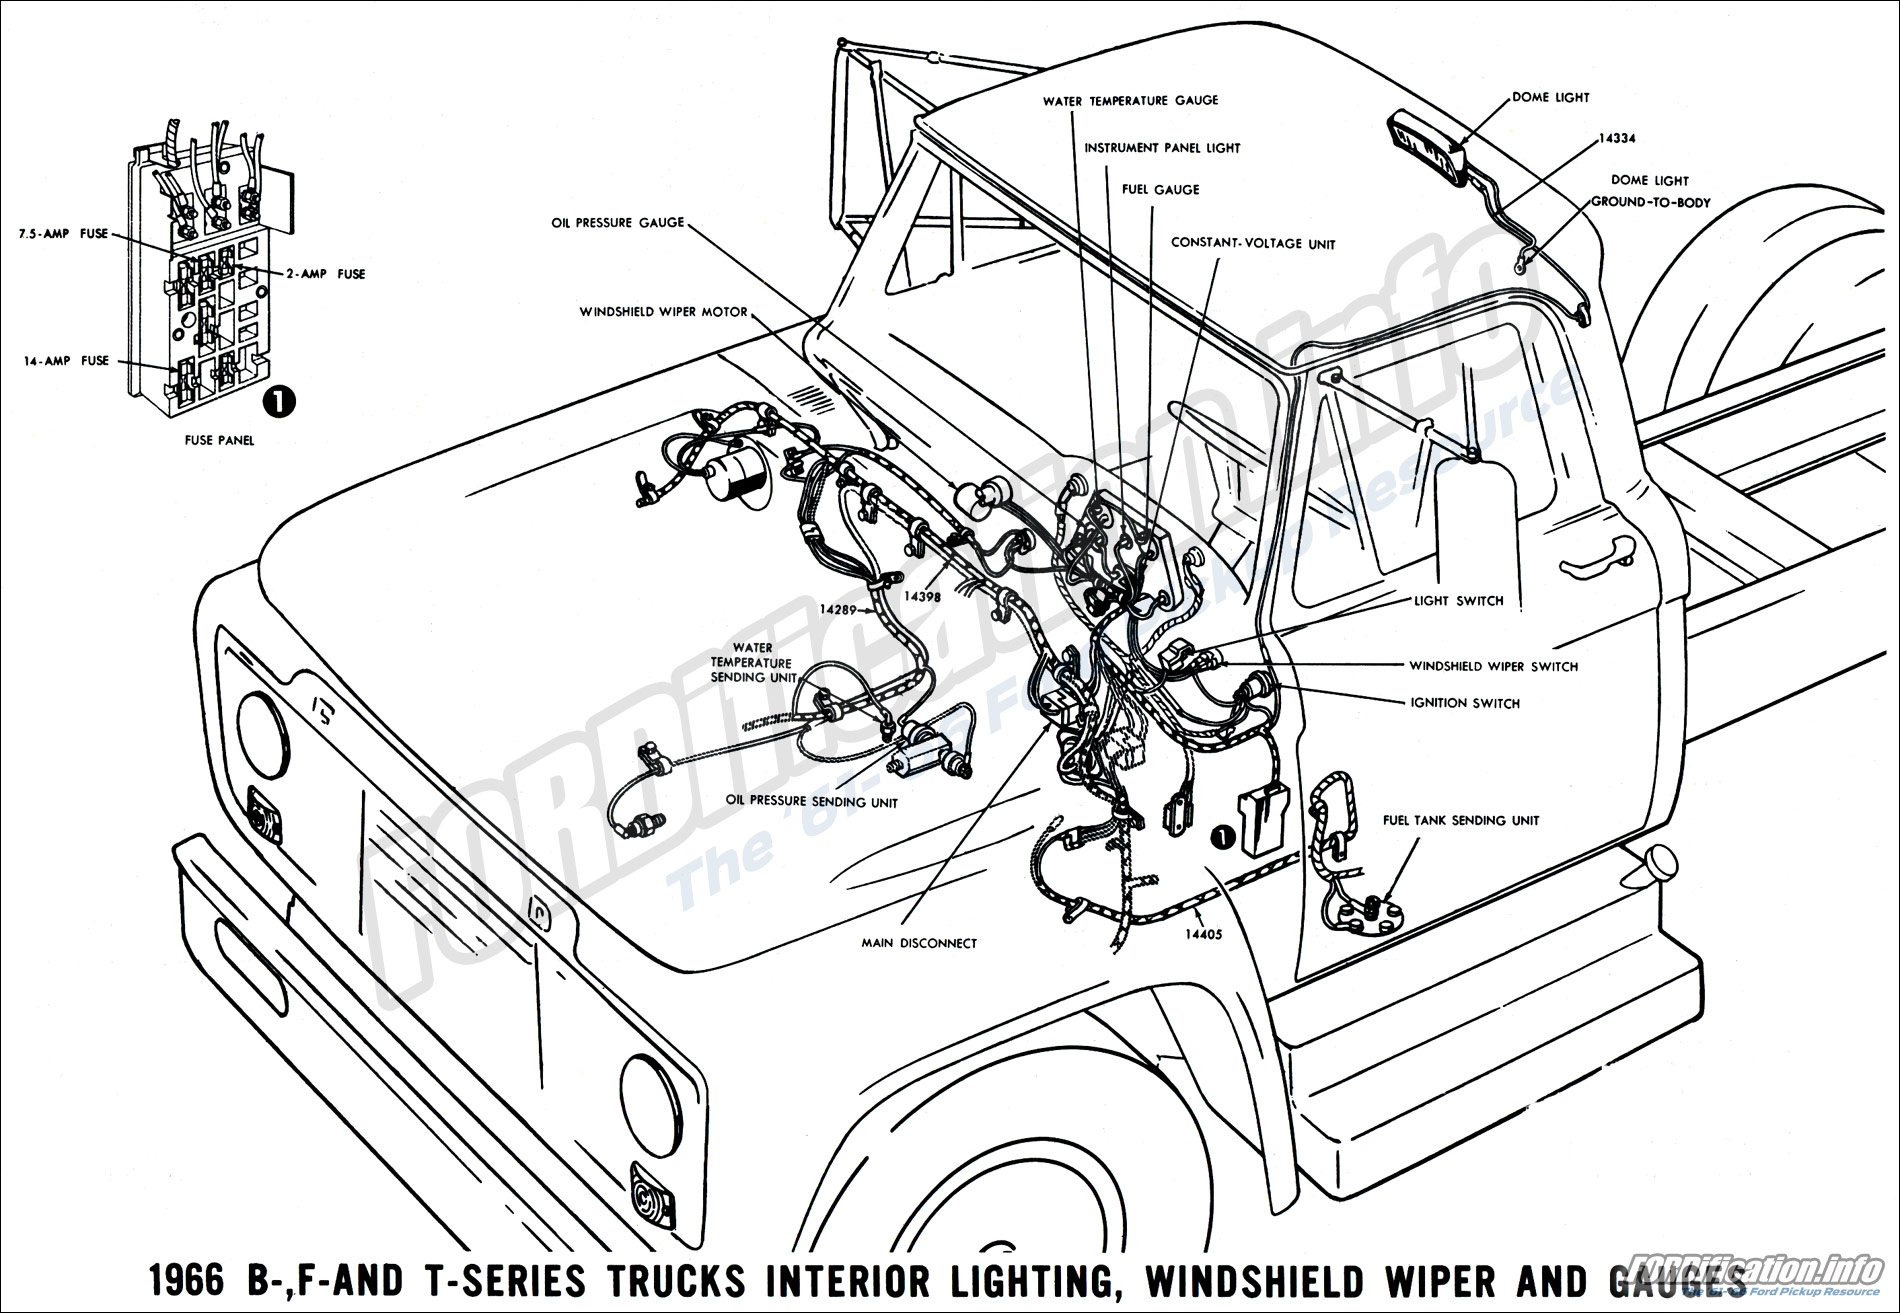 1962 F250 Lights Wiring : 23 Wiring Diagram Images